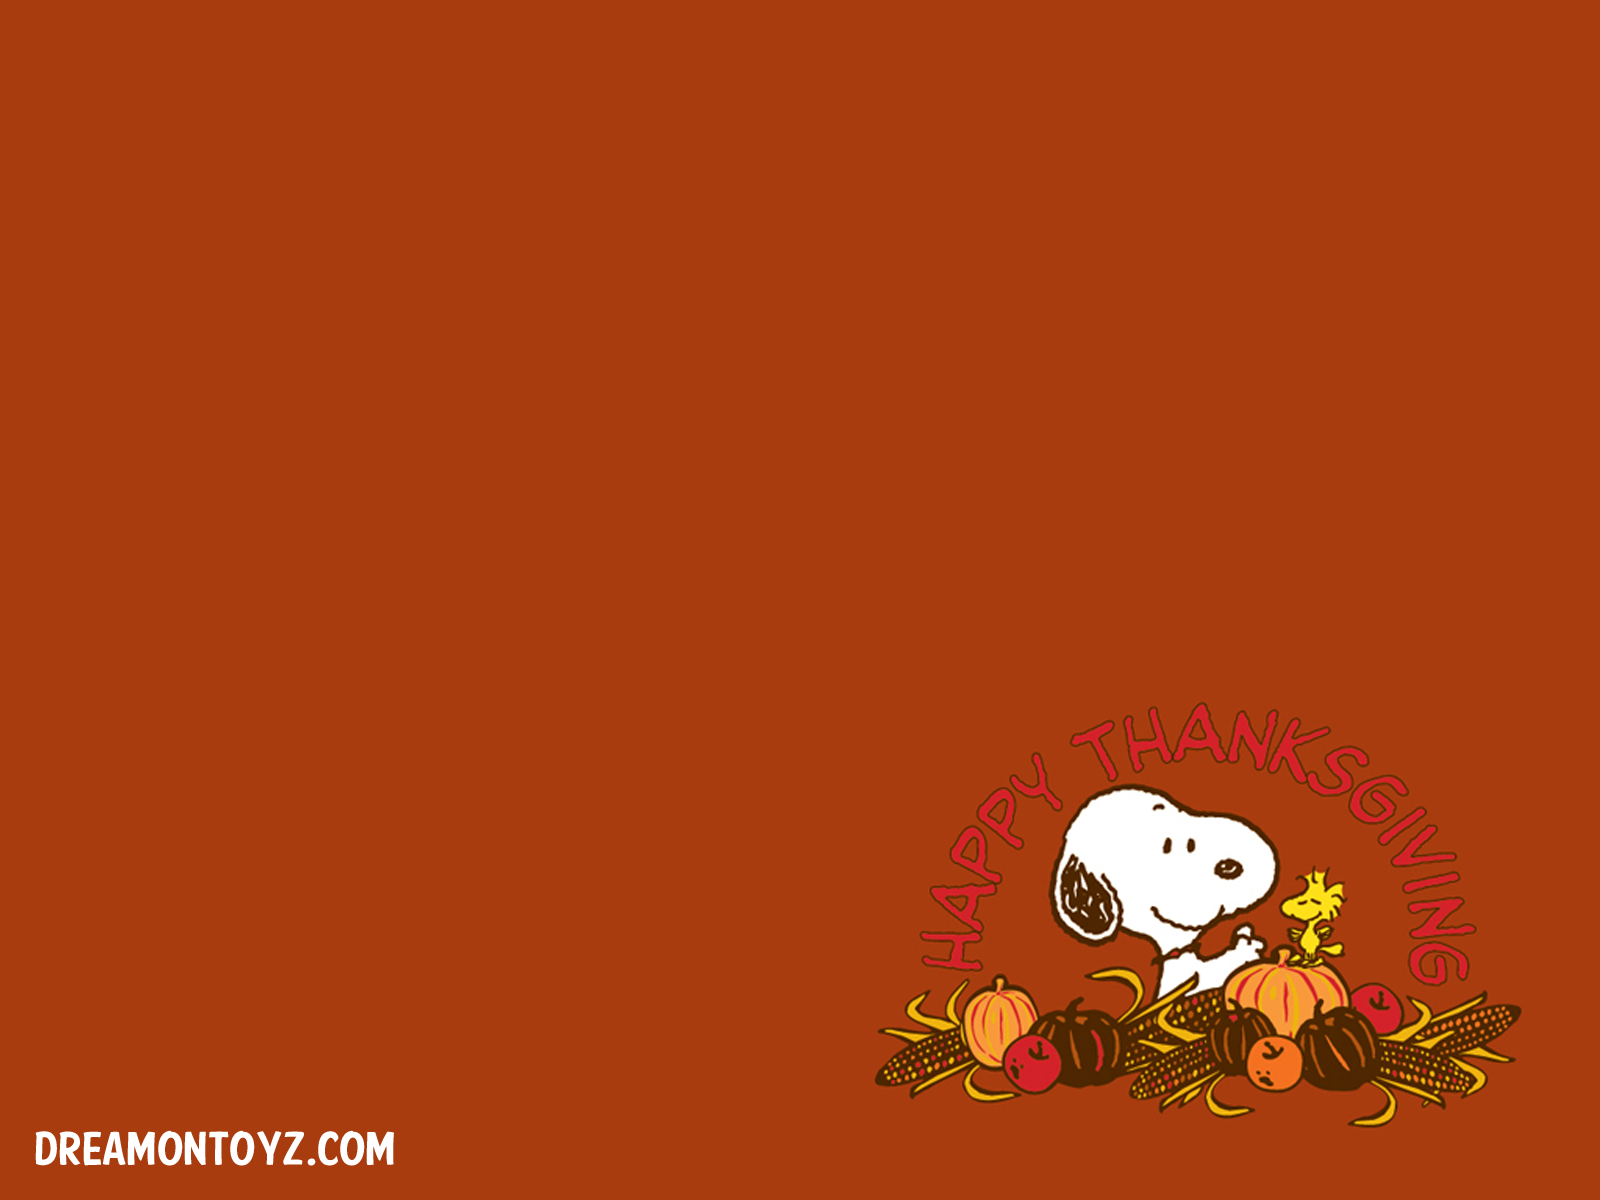 FREE Cartoon Graphics Pics Gifs Photographs Peanuts Snoopy 1600x1200